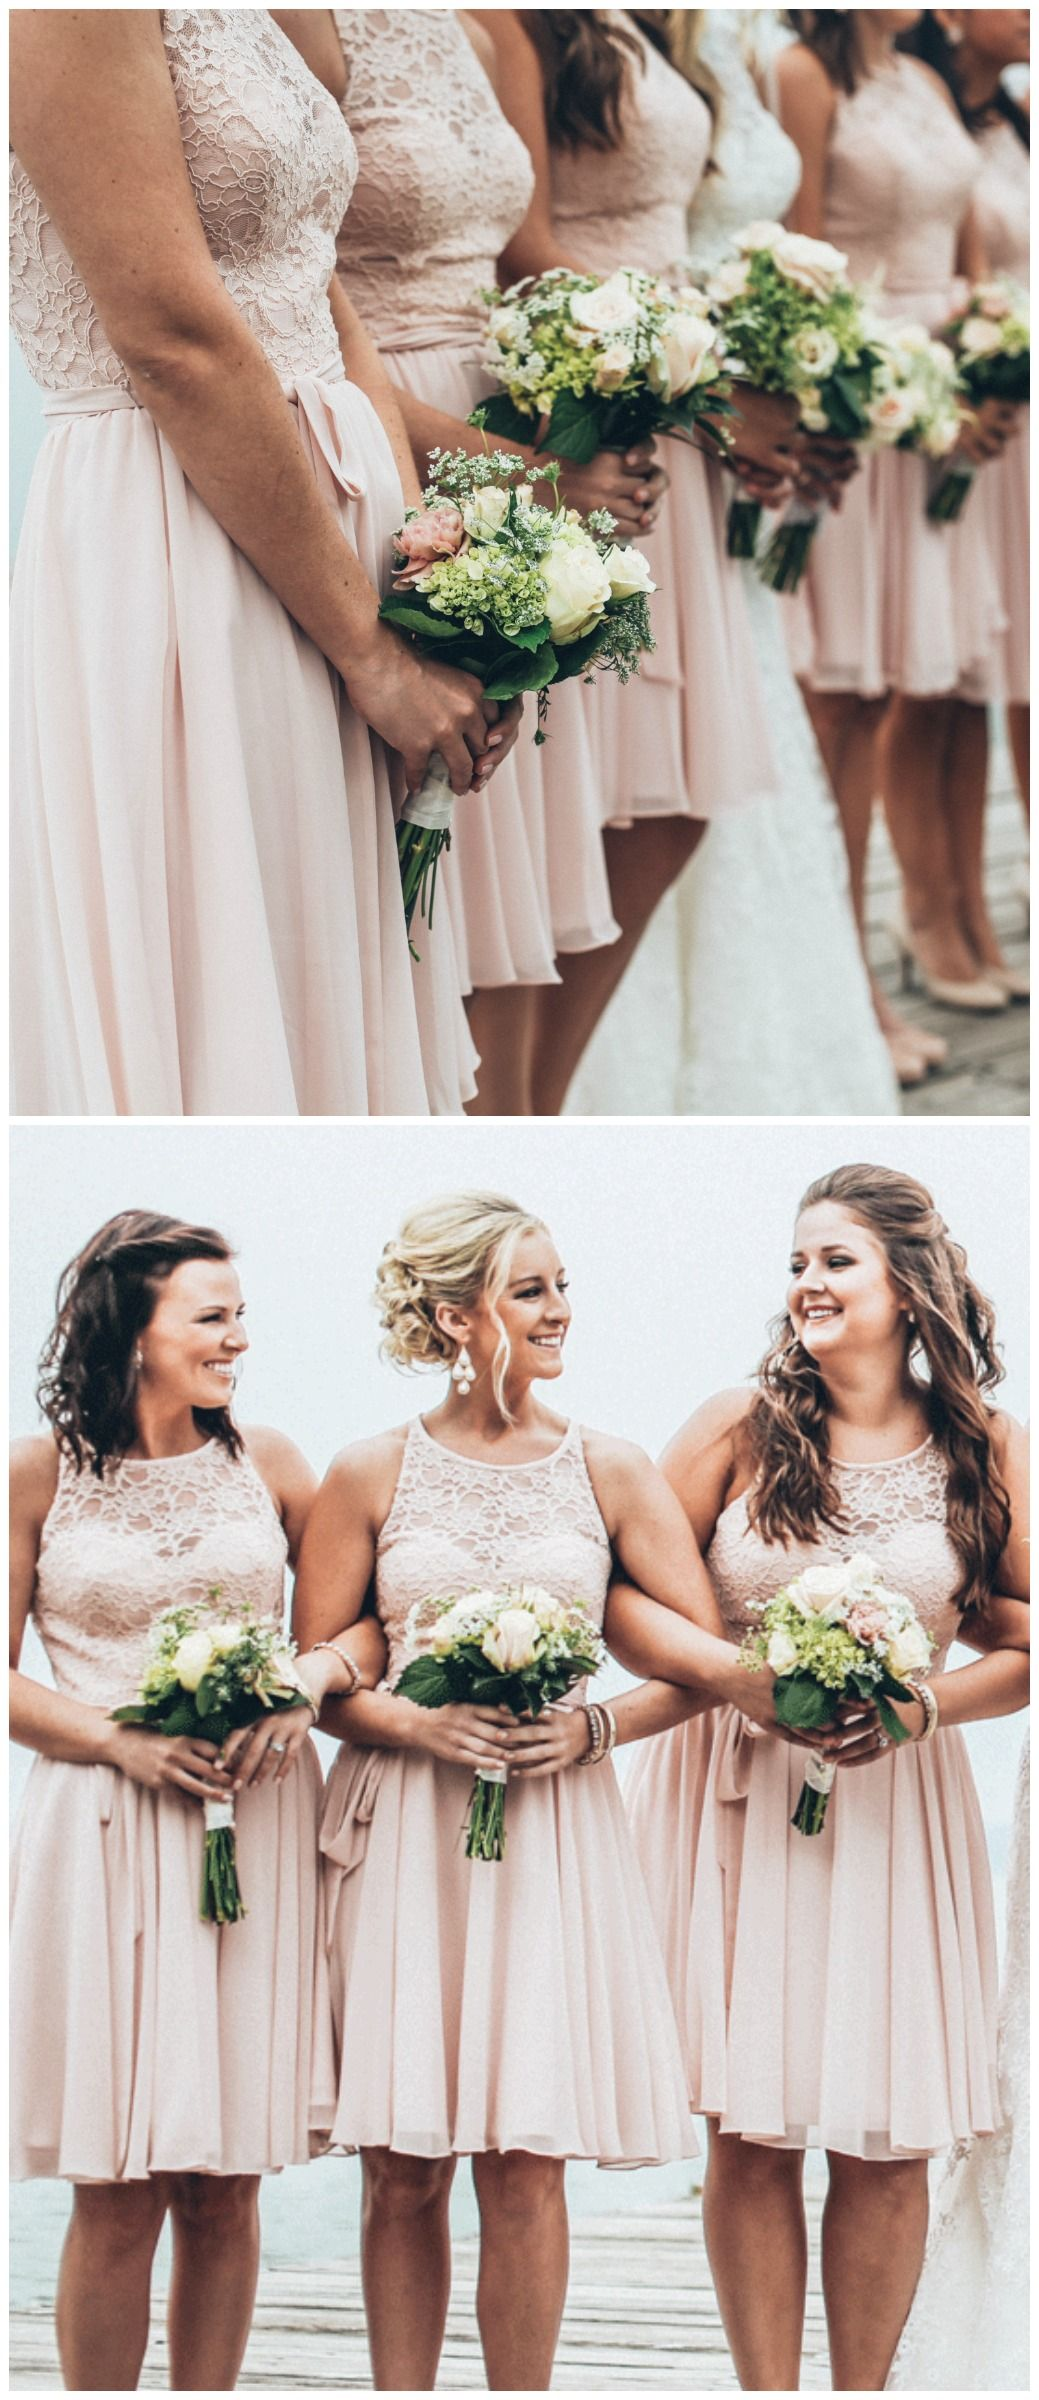 Londyn chiffon bridesmaid dresses romantic and lace top